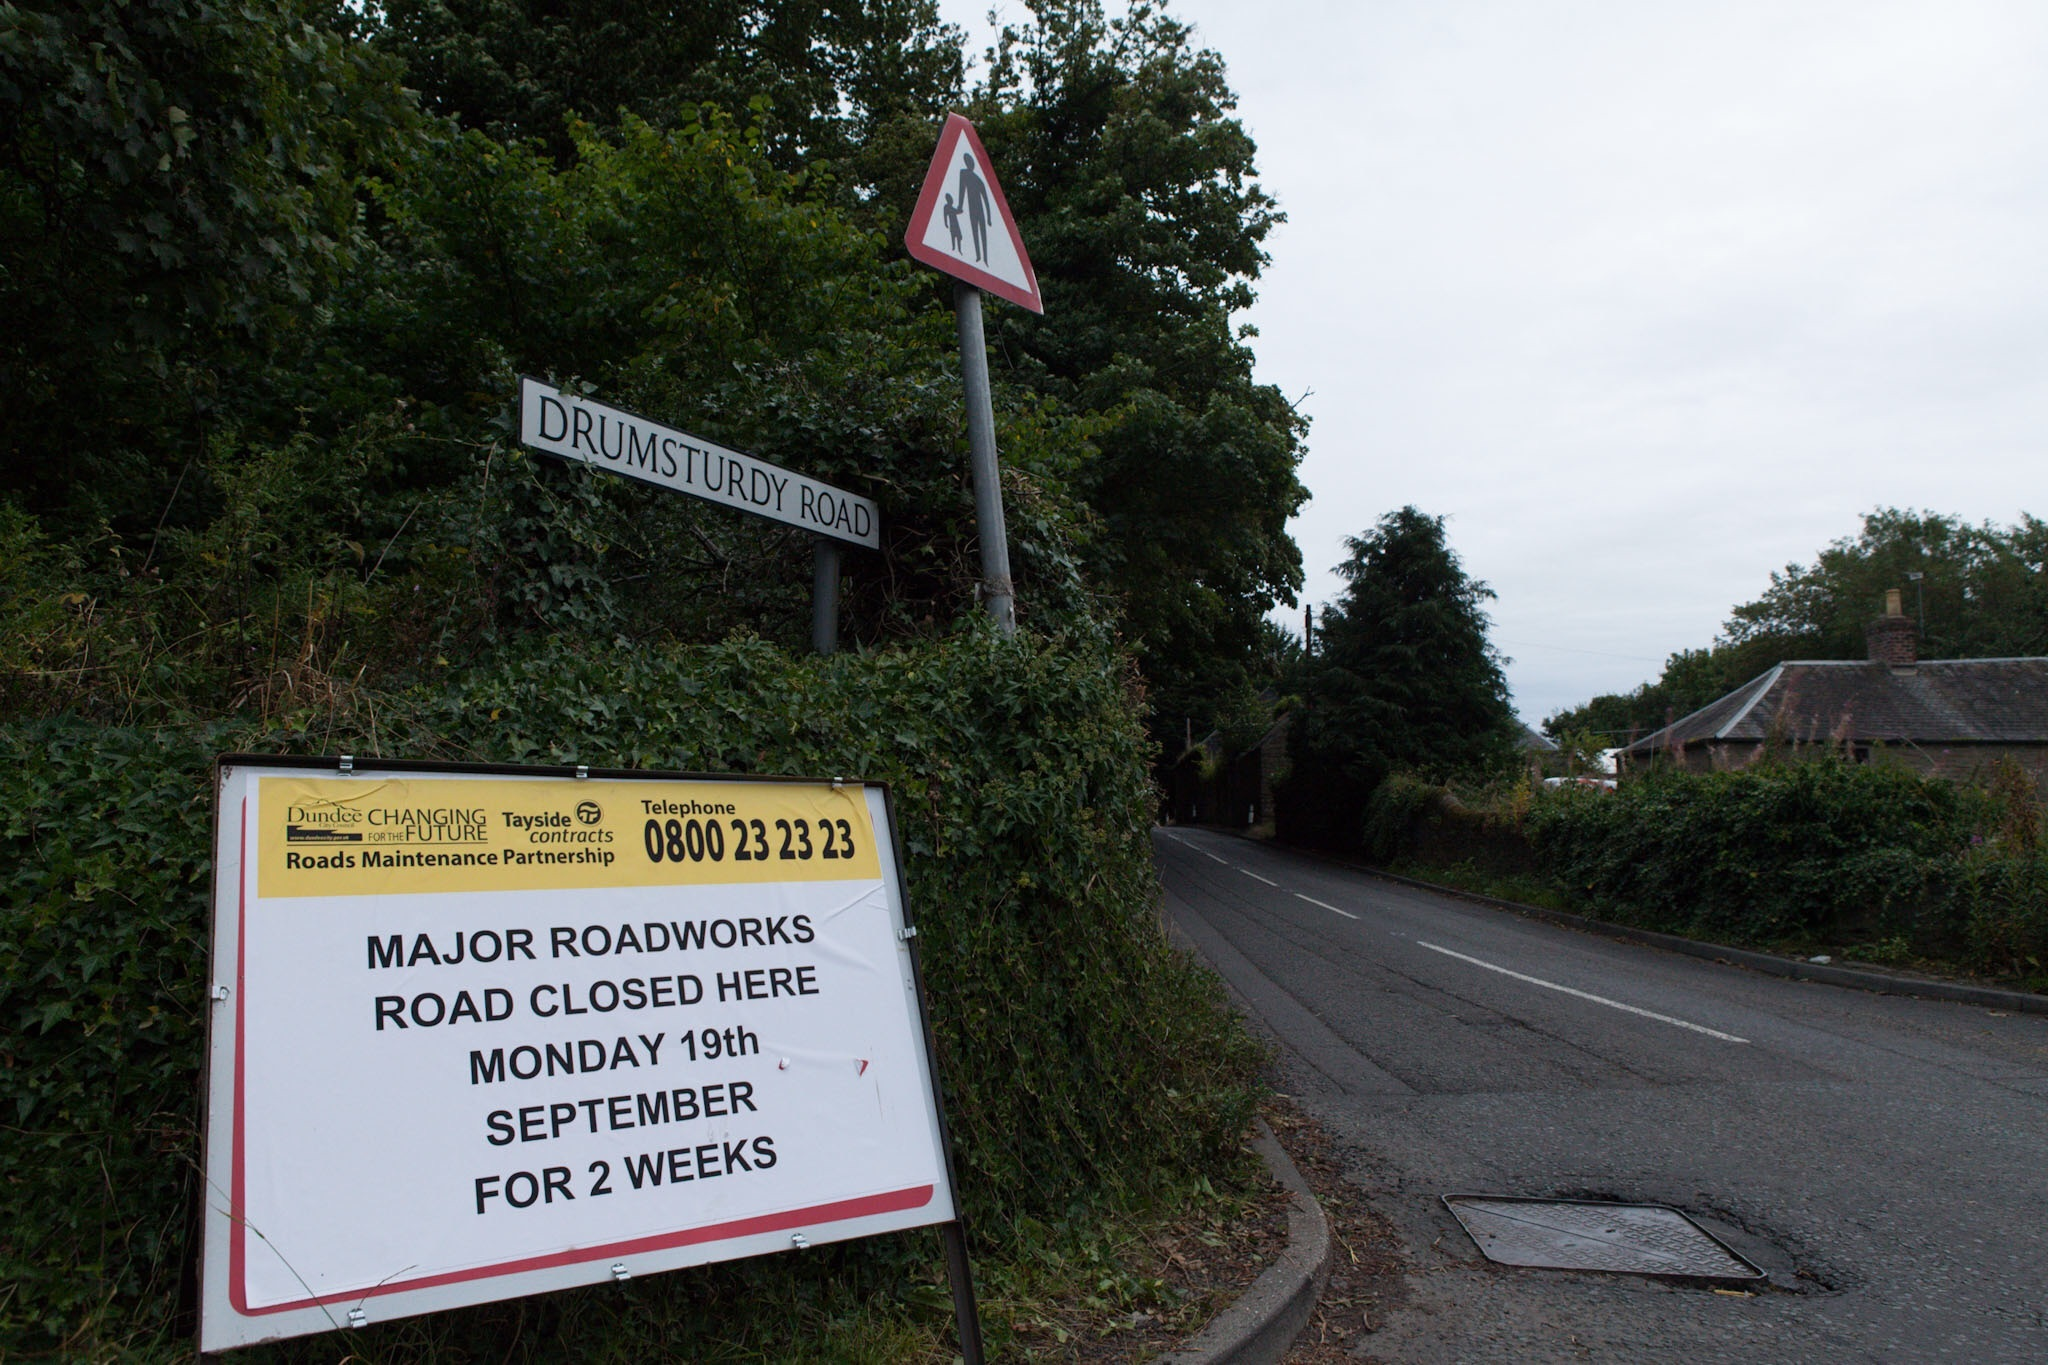 The roadworks are set to take place from September 19.